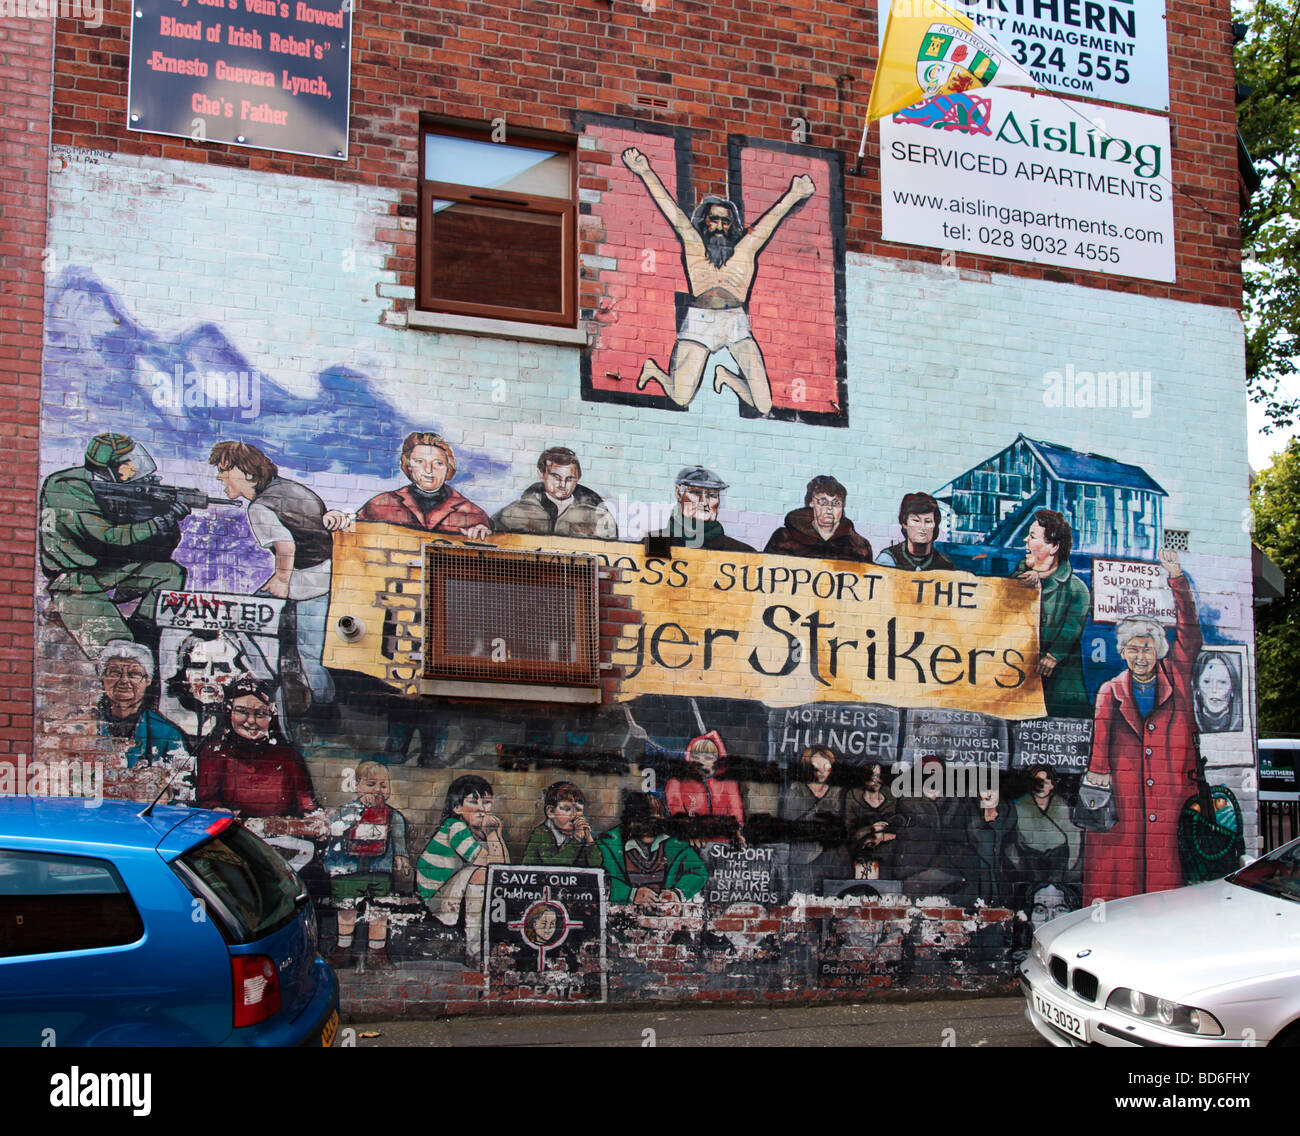 Mural with the slogan 'St James's Support the Hunger Strikers' in the Republican/nationalist area of - Stock Image